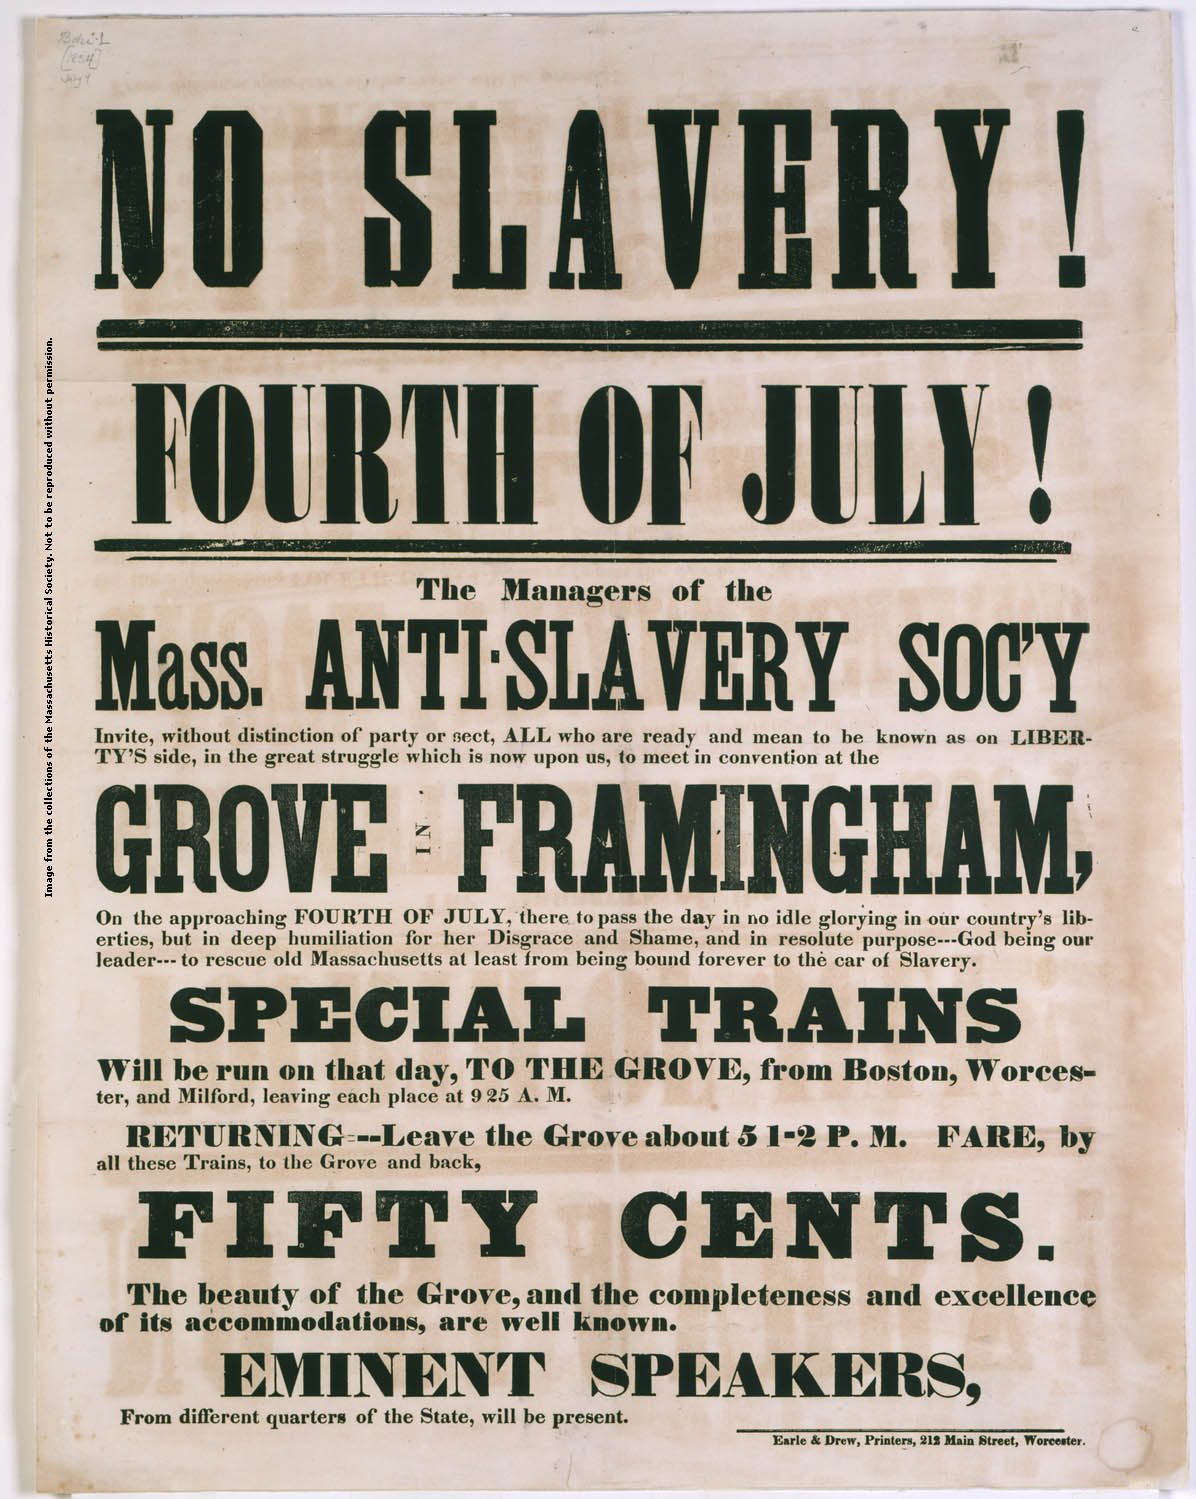 the history of the abolitionist movement in the united states Us history: slavery and abolition one of the most prominent african american figures in the abolitionist movement united states abolitionist and.